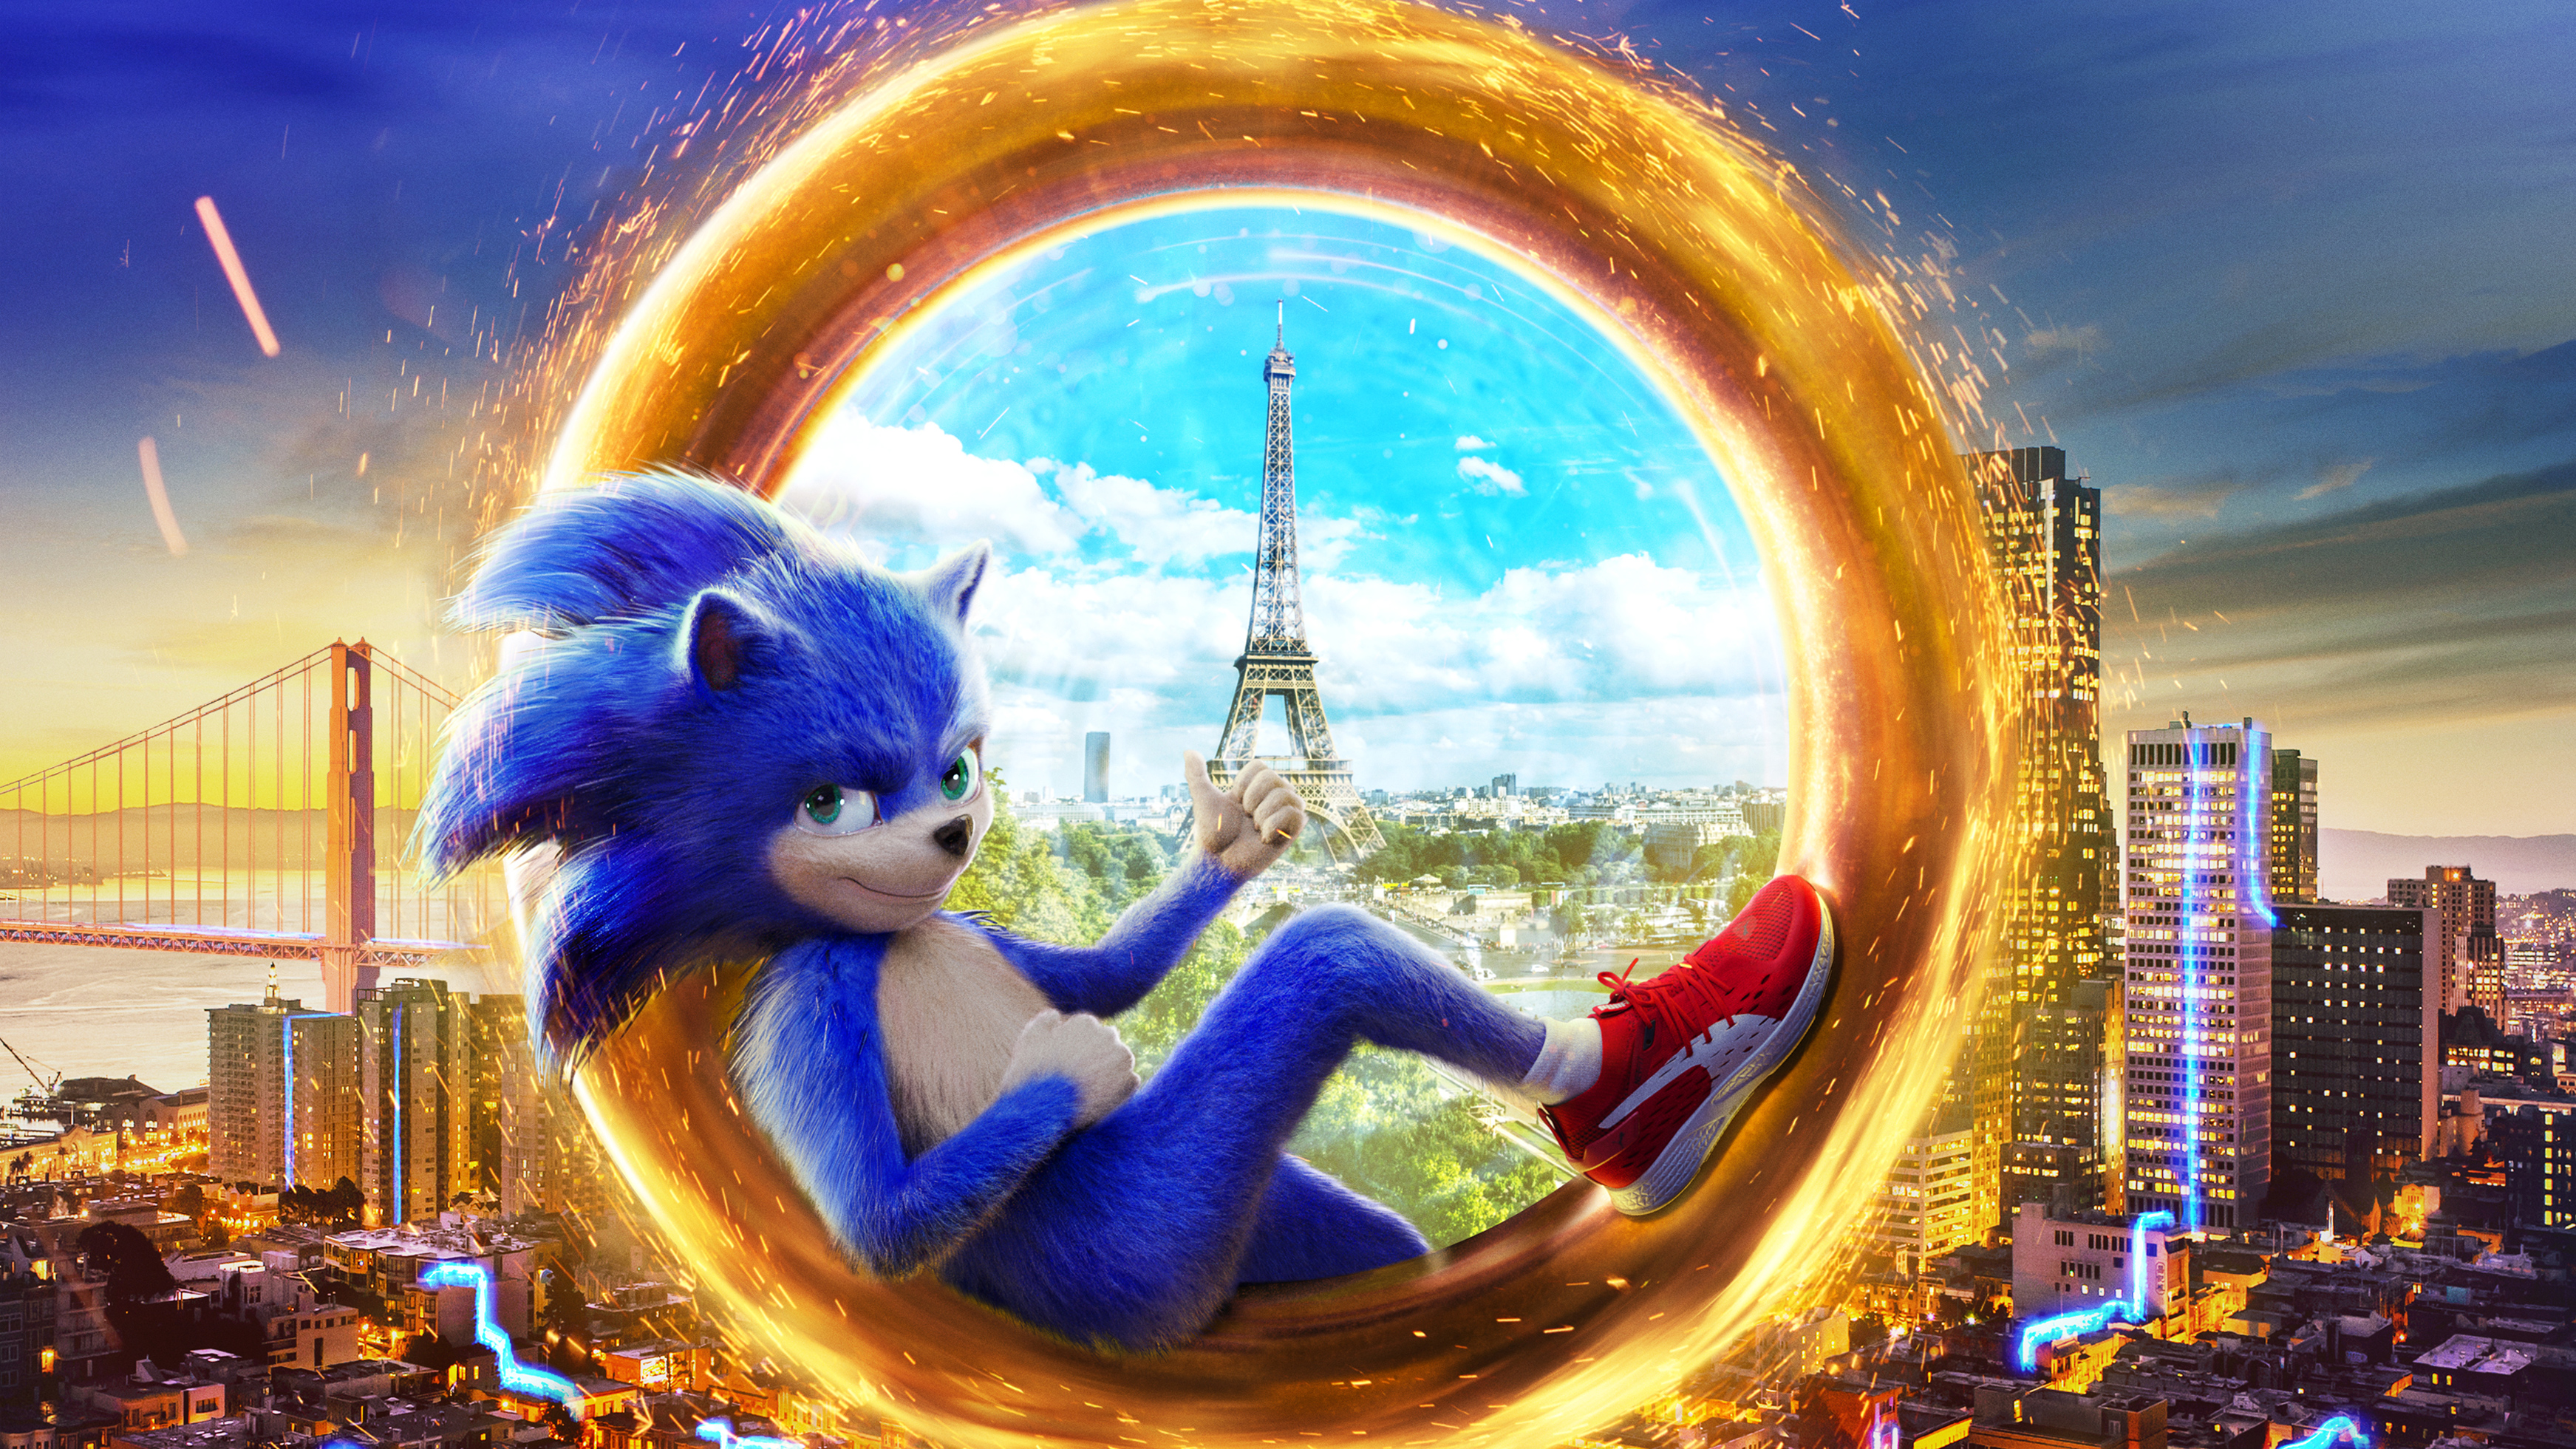 2019 Sonic The Hedgehog 4k Hd Movies 4k Wallpapers Images Backgrounds Photos And Pictures